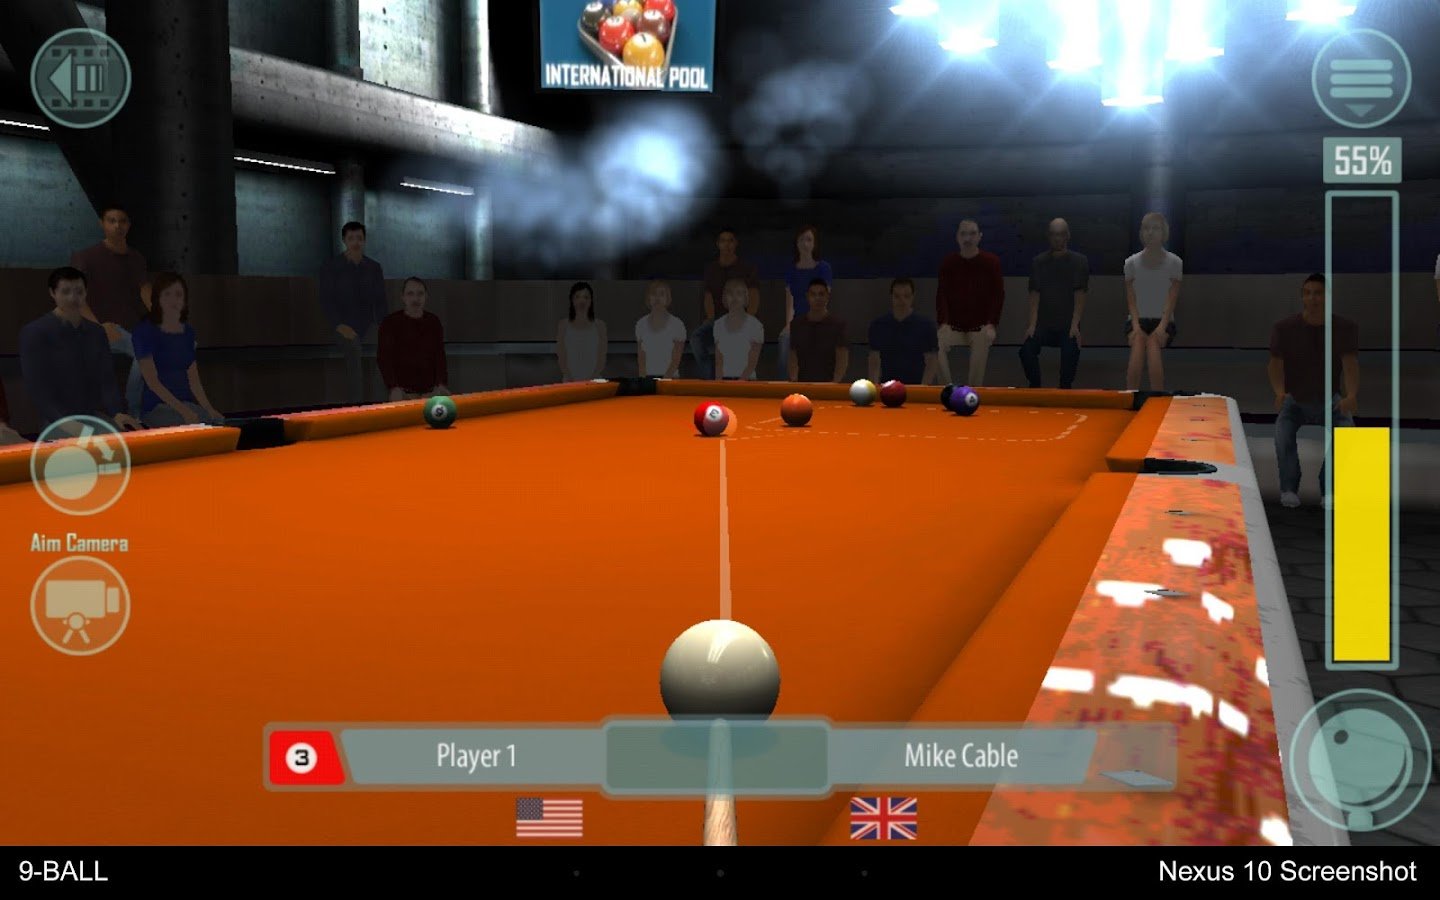 International Pool Screenshot 15